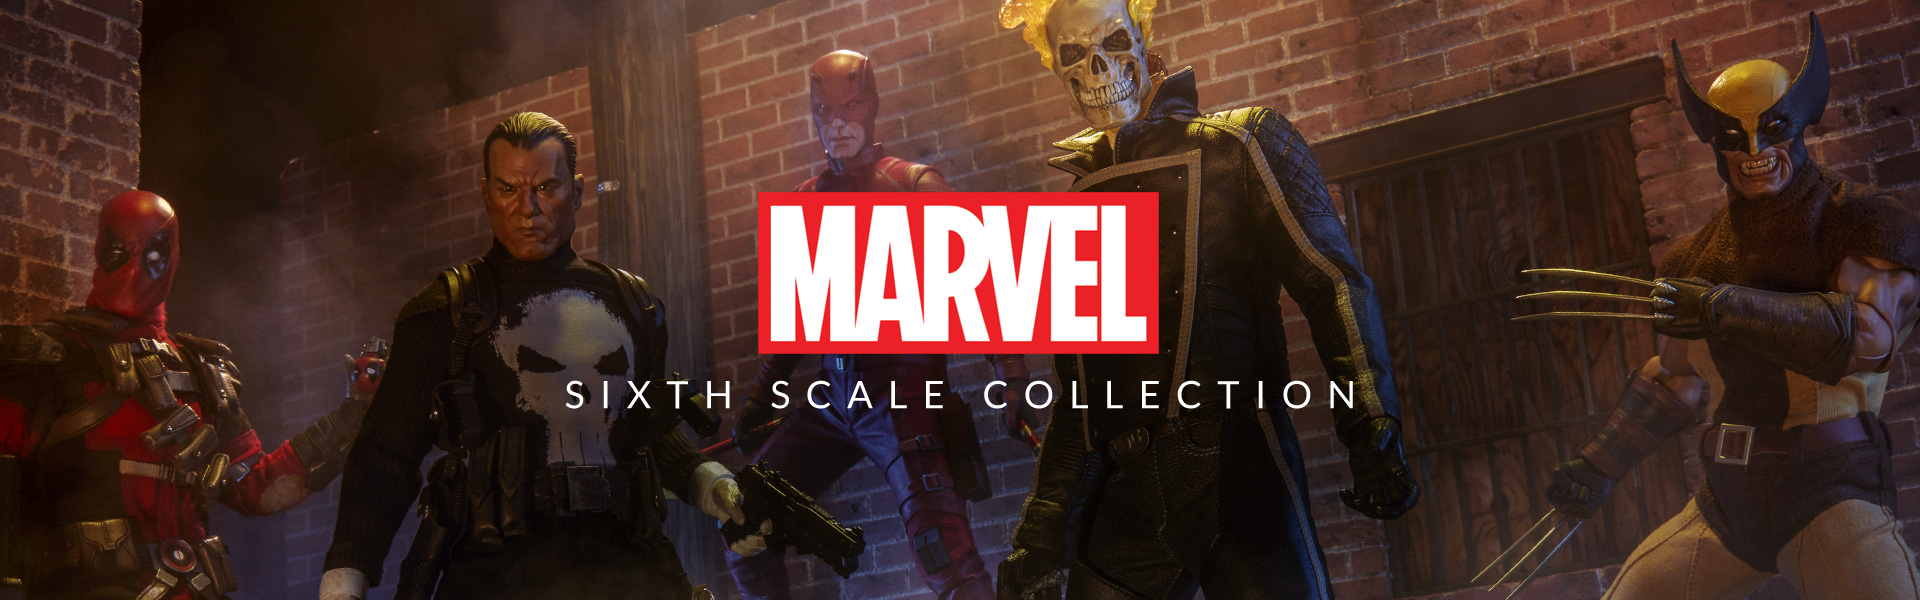 Marvel Sixth Scale Collection